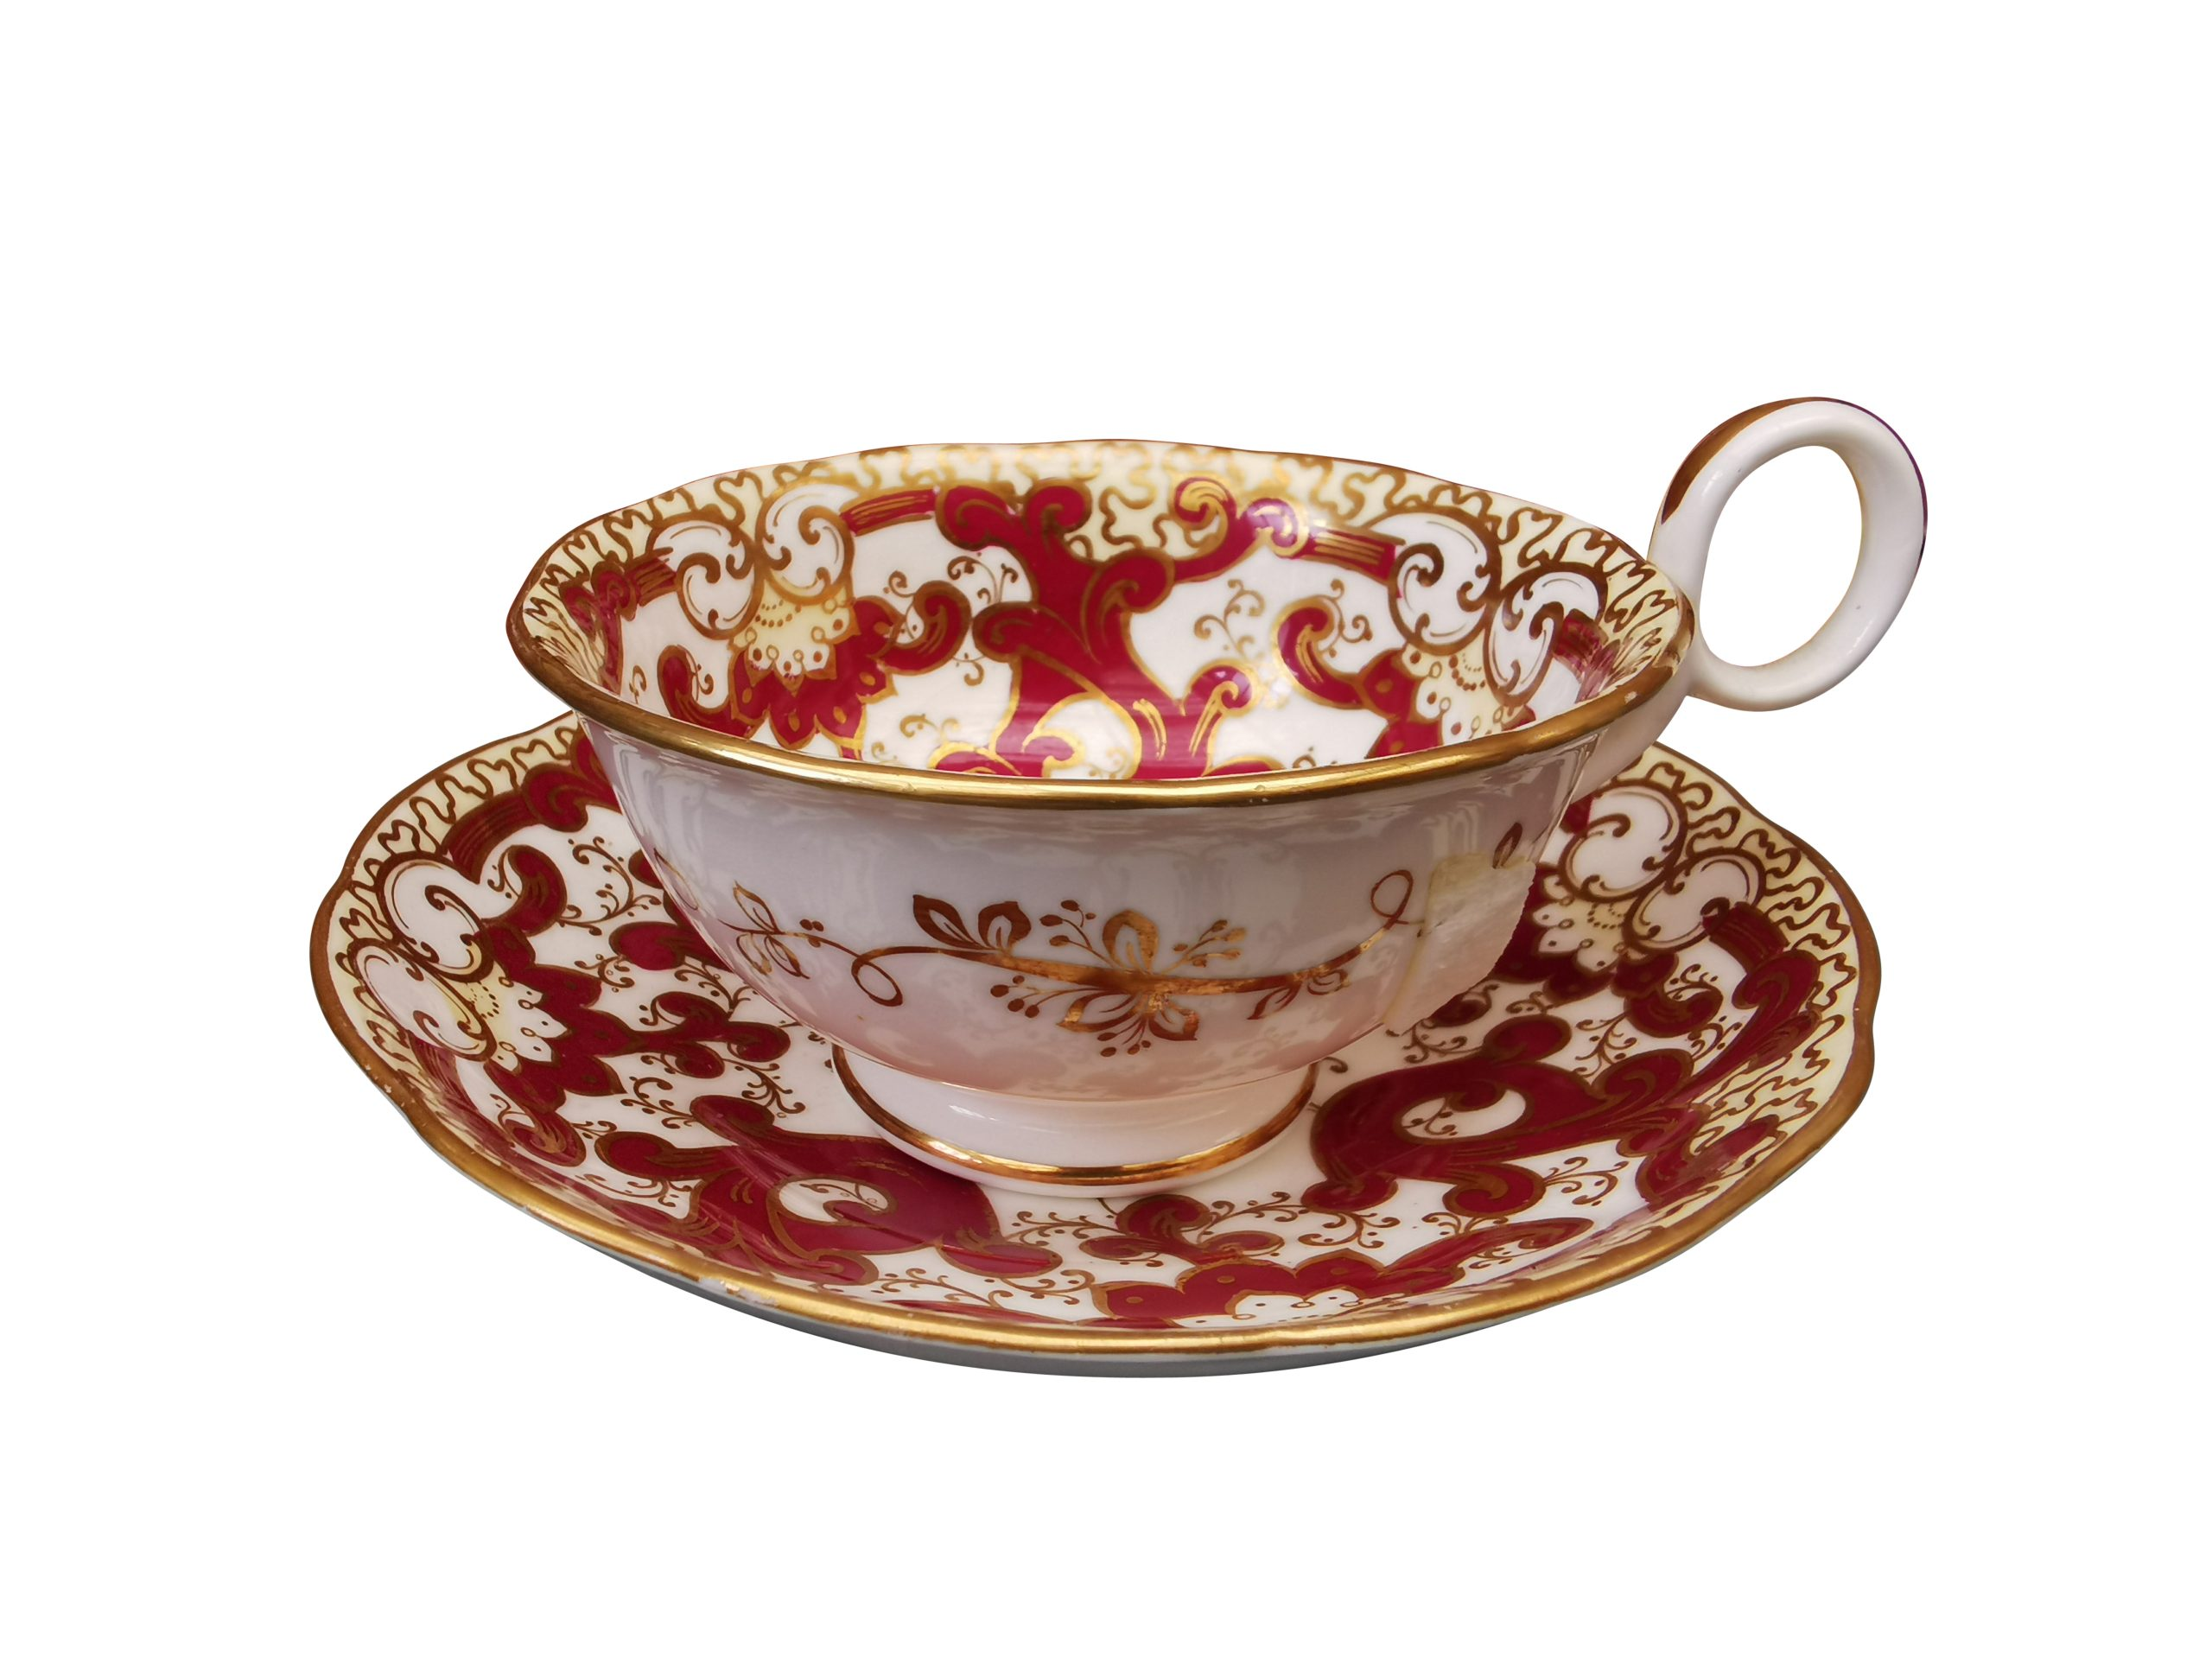 Antique Samuel Alcock red and gold breakfast cup and saucer from Antik Seramika